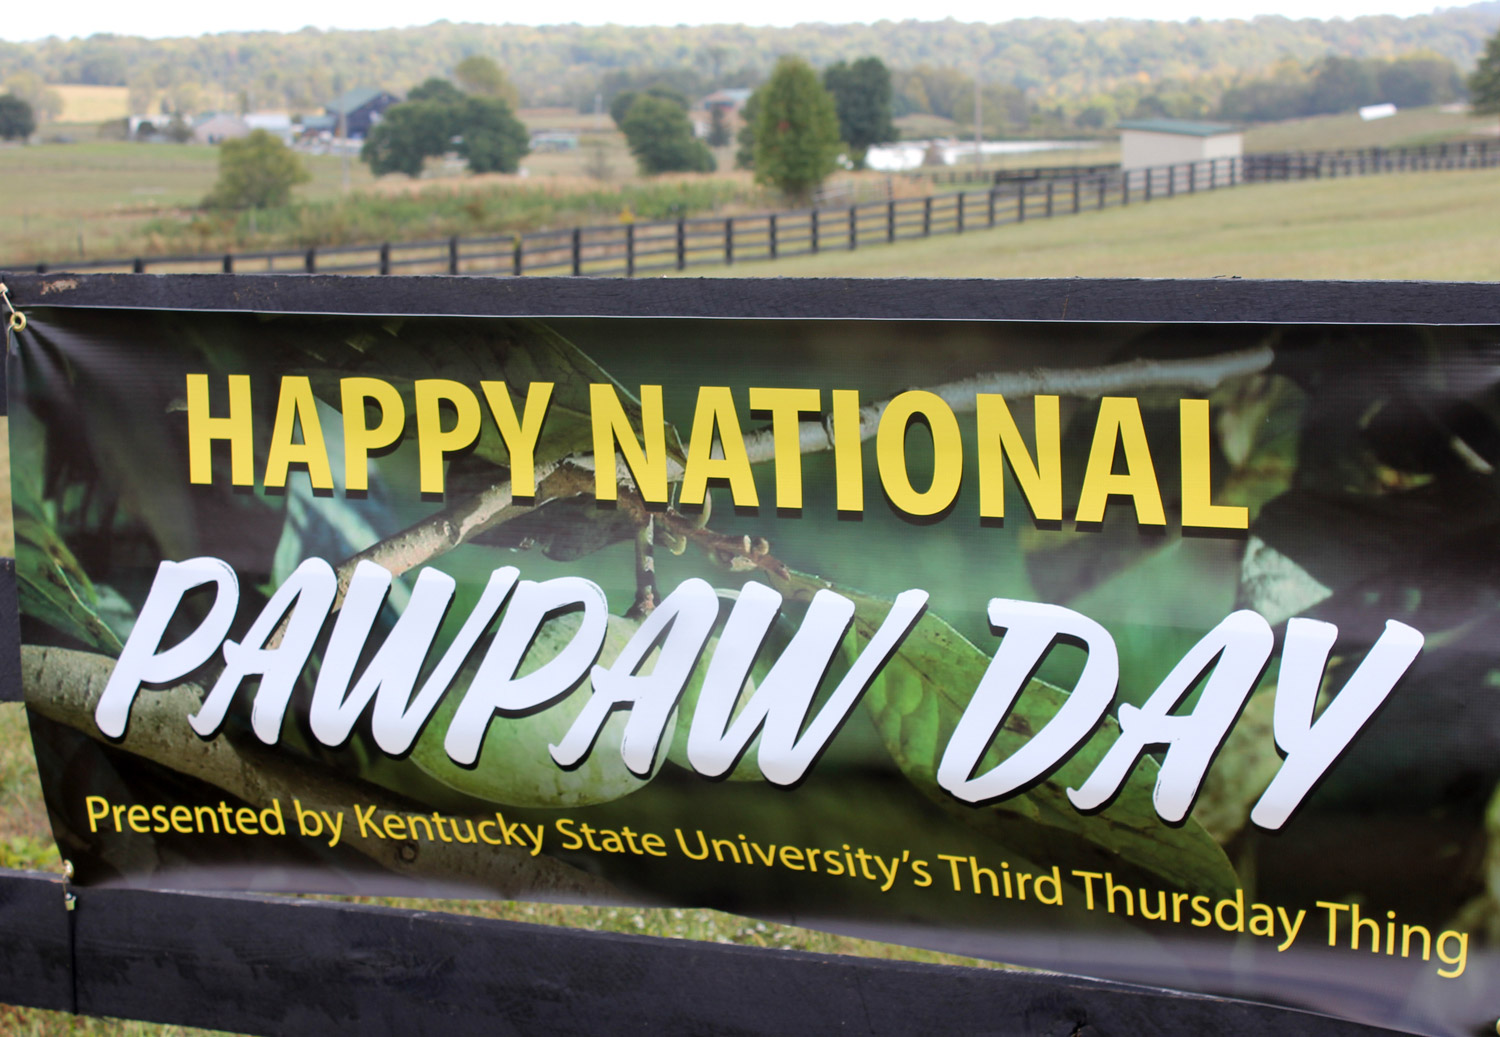 Banner on horse fence proclaiming National Pawpaw Day at KY State University in Frankfort